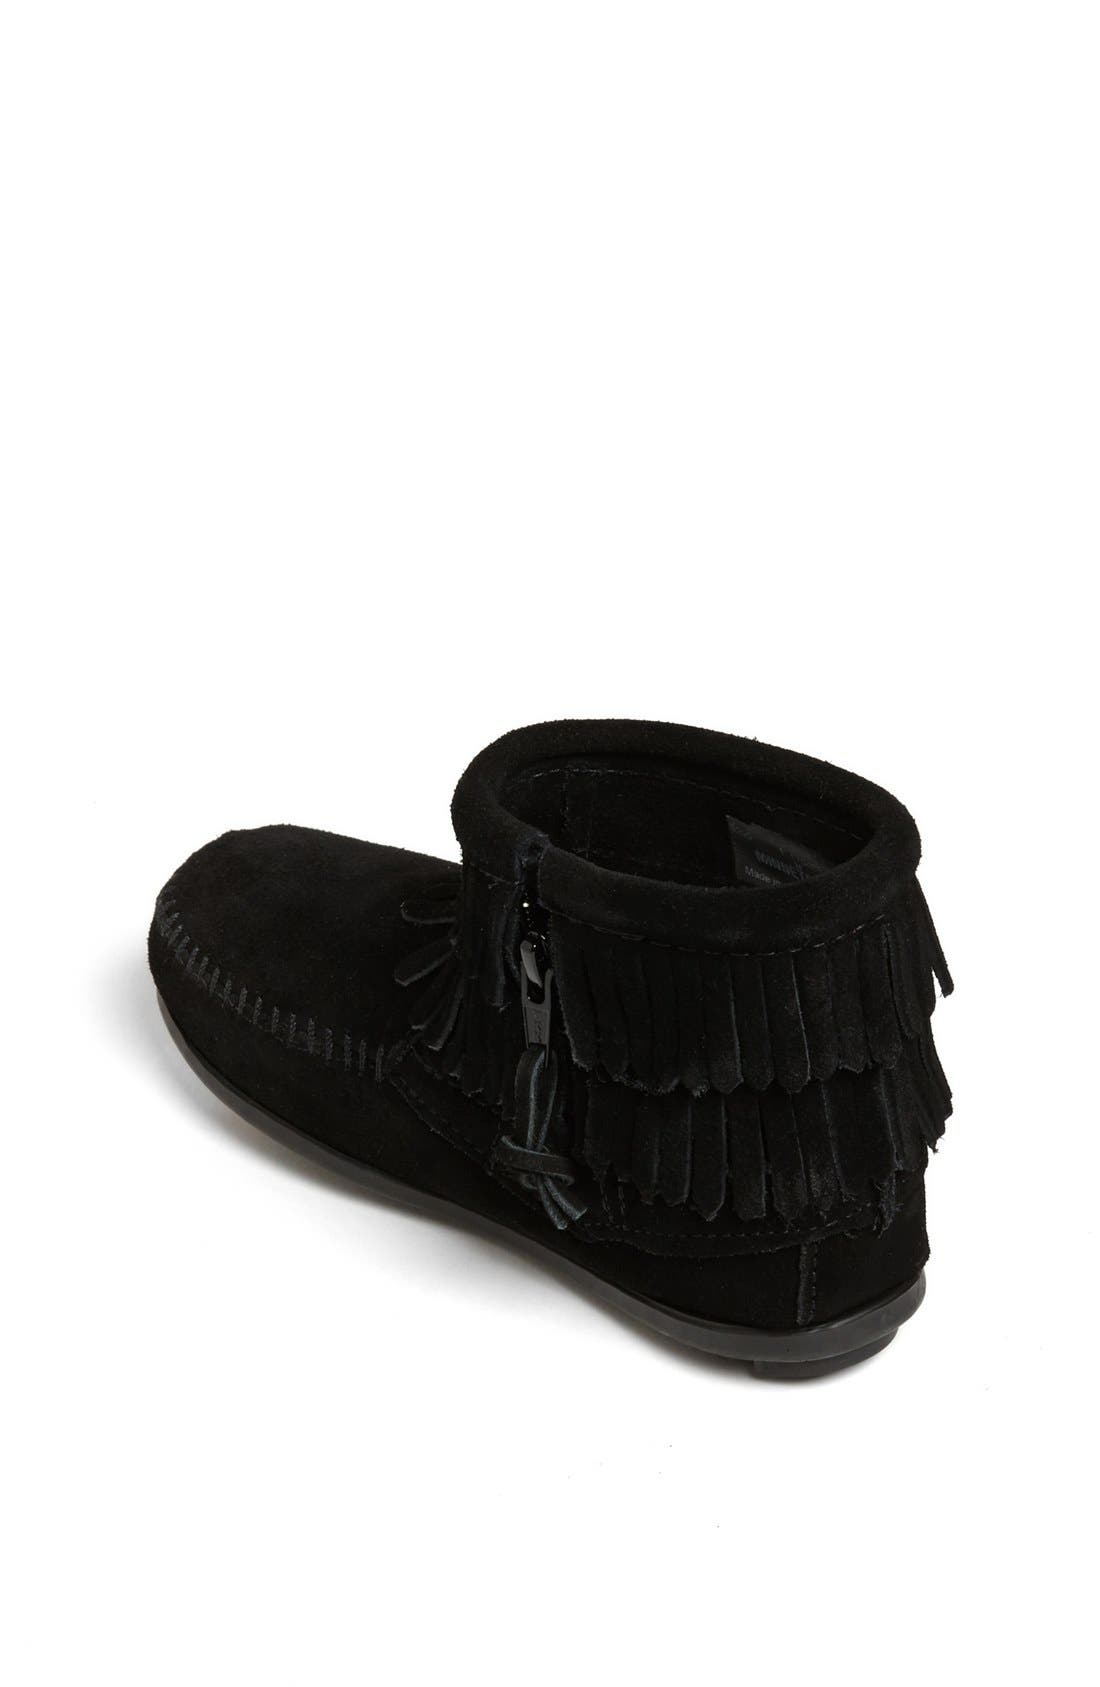 Alternate Image 2  - Minnetonka 'Double Fringe' Boot (Baby, Walker, Toddler, Little Kid & Big Kid)